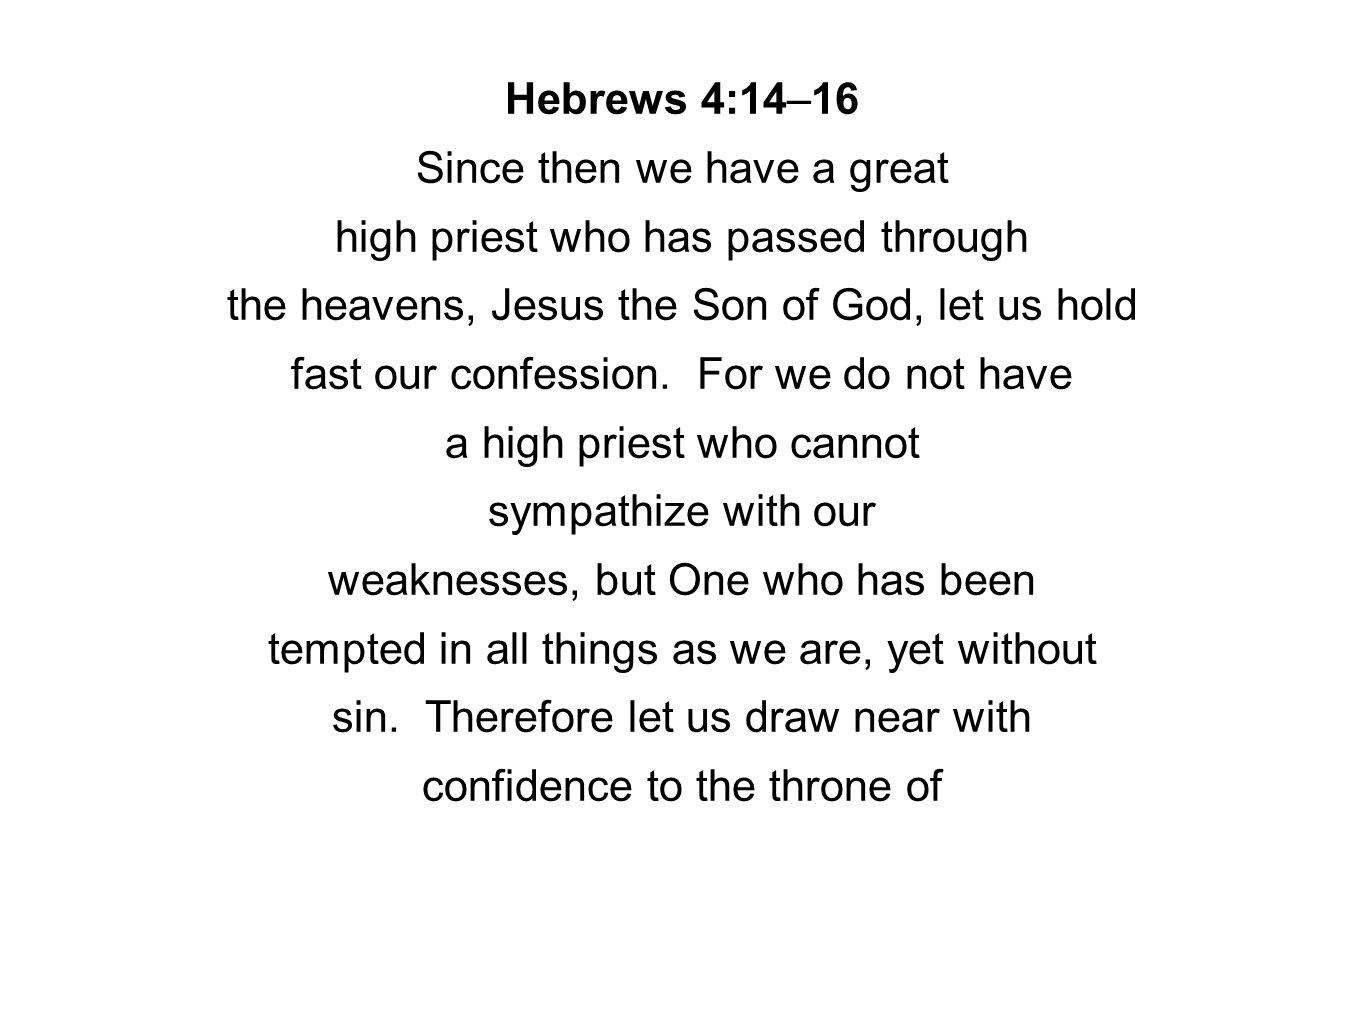 Hebrews 4:14–16 Since then we have a great high priest who has passed through the heavens, Jesus the Son of God, let us hold fast our confession. For